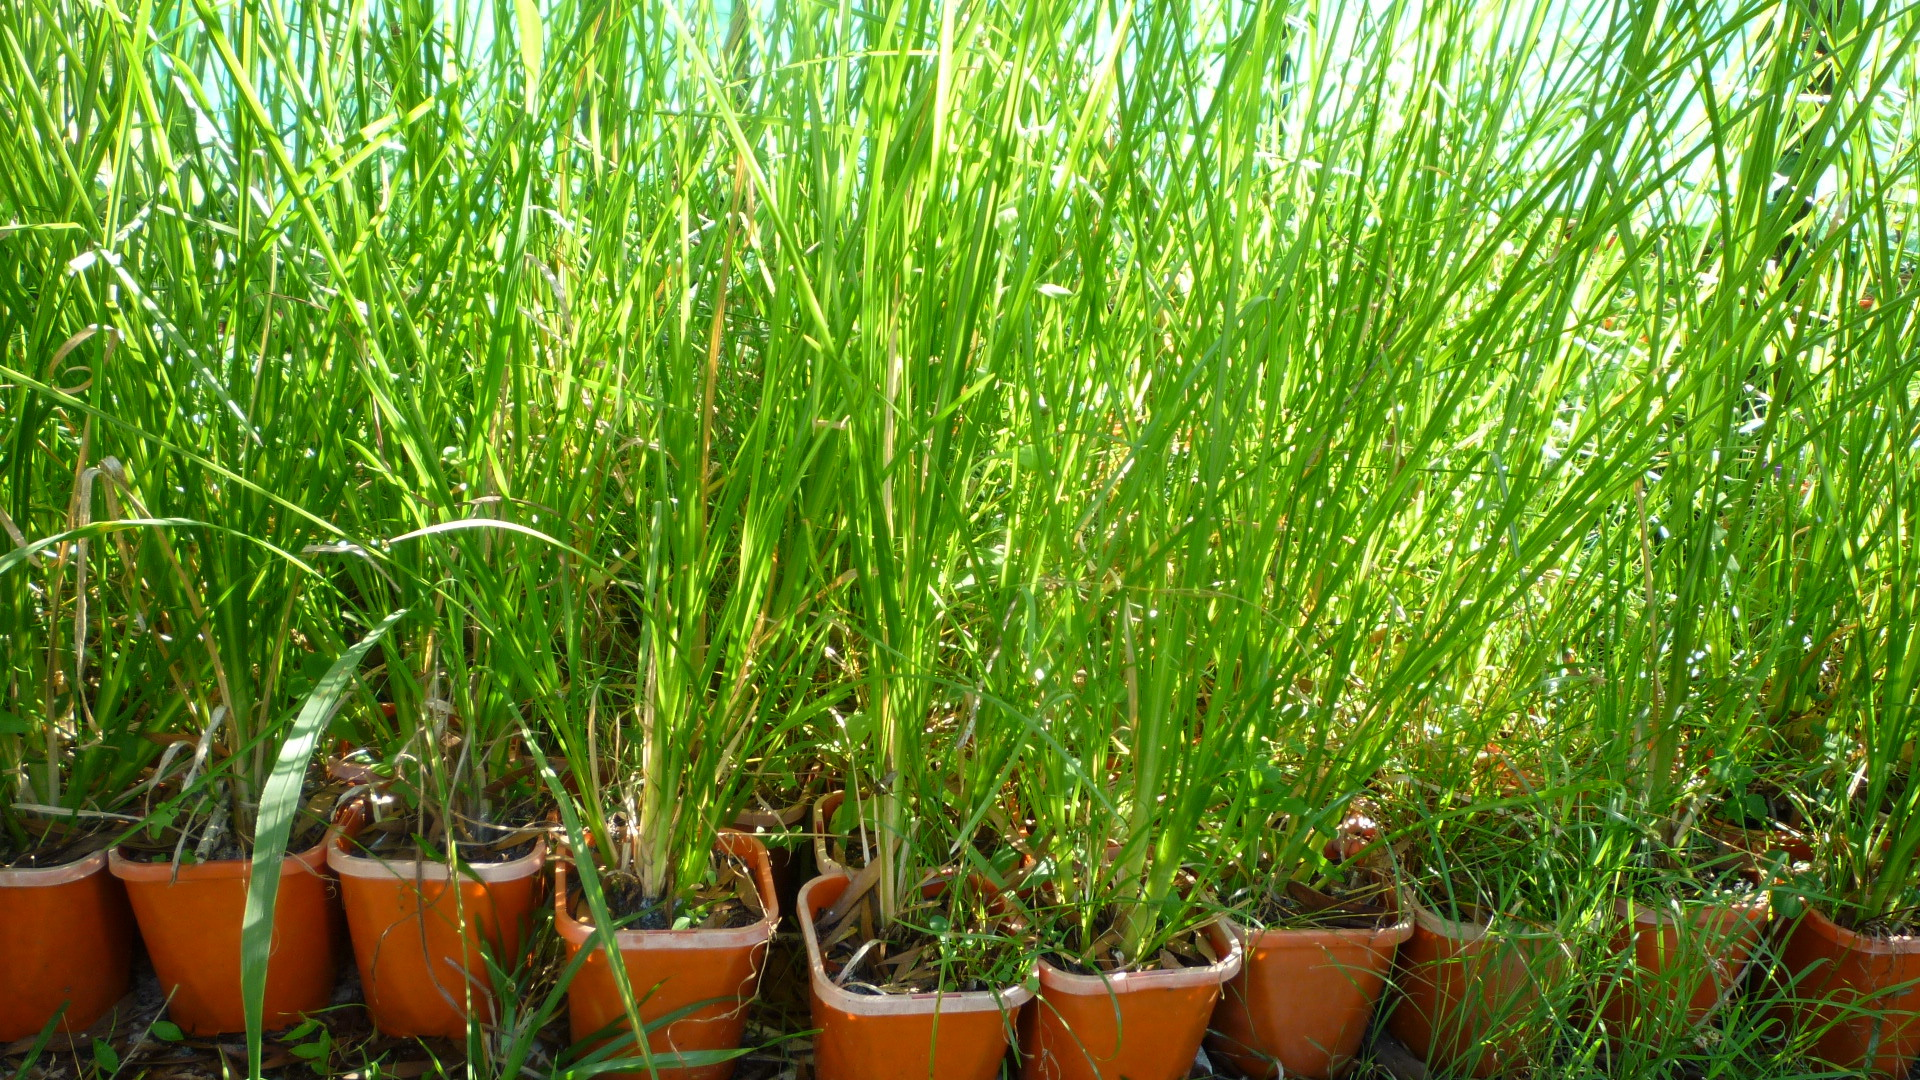 Monto Vetiver grass